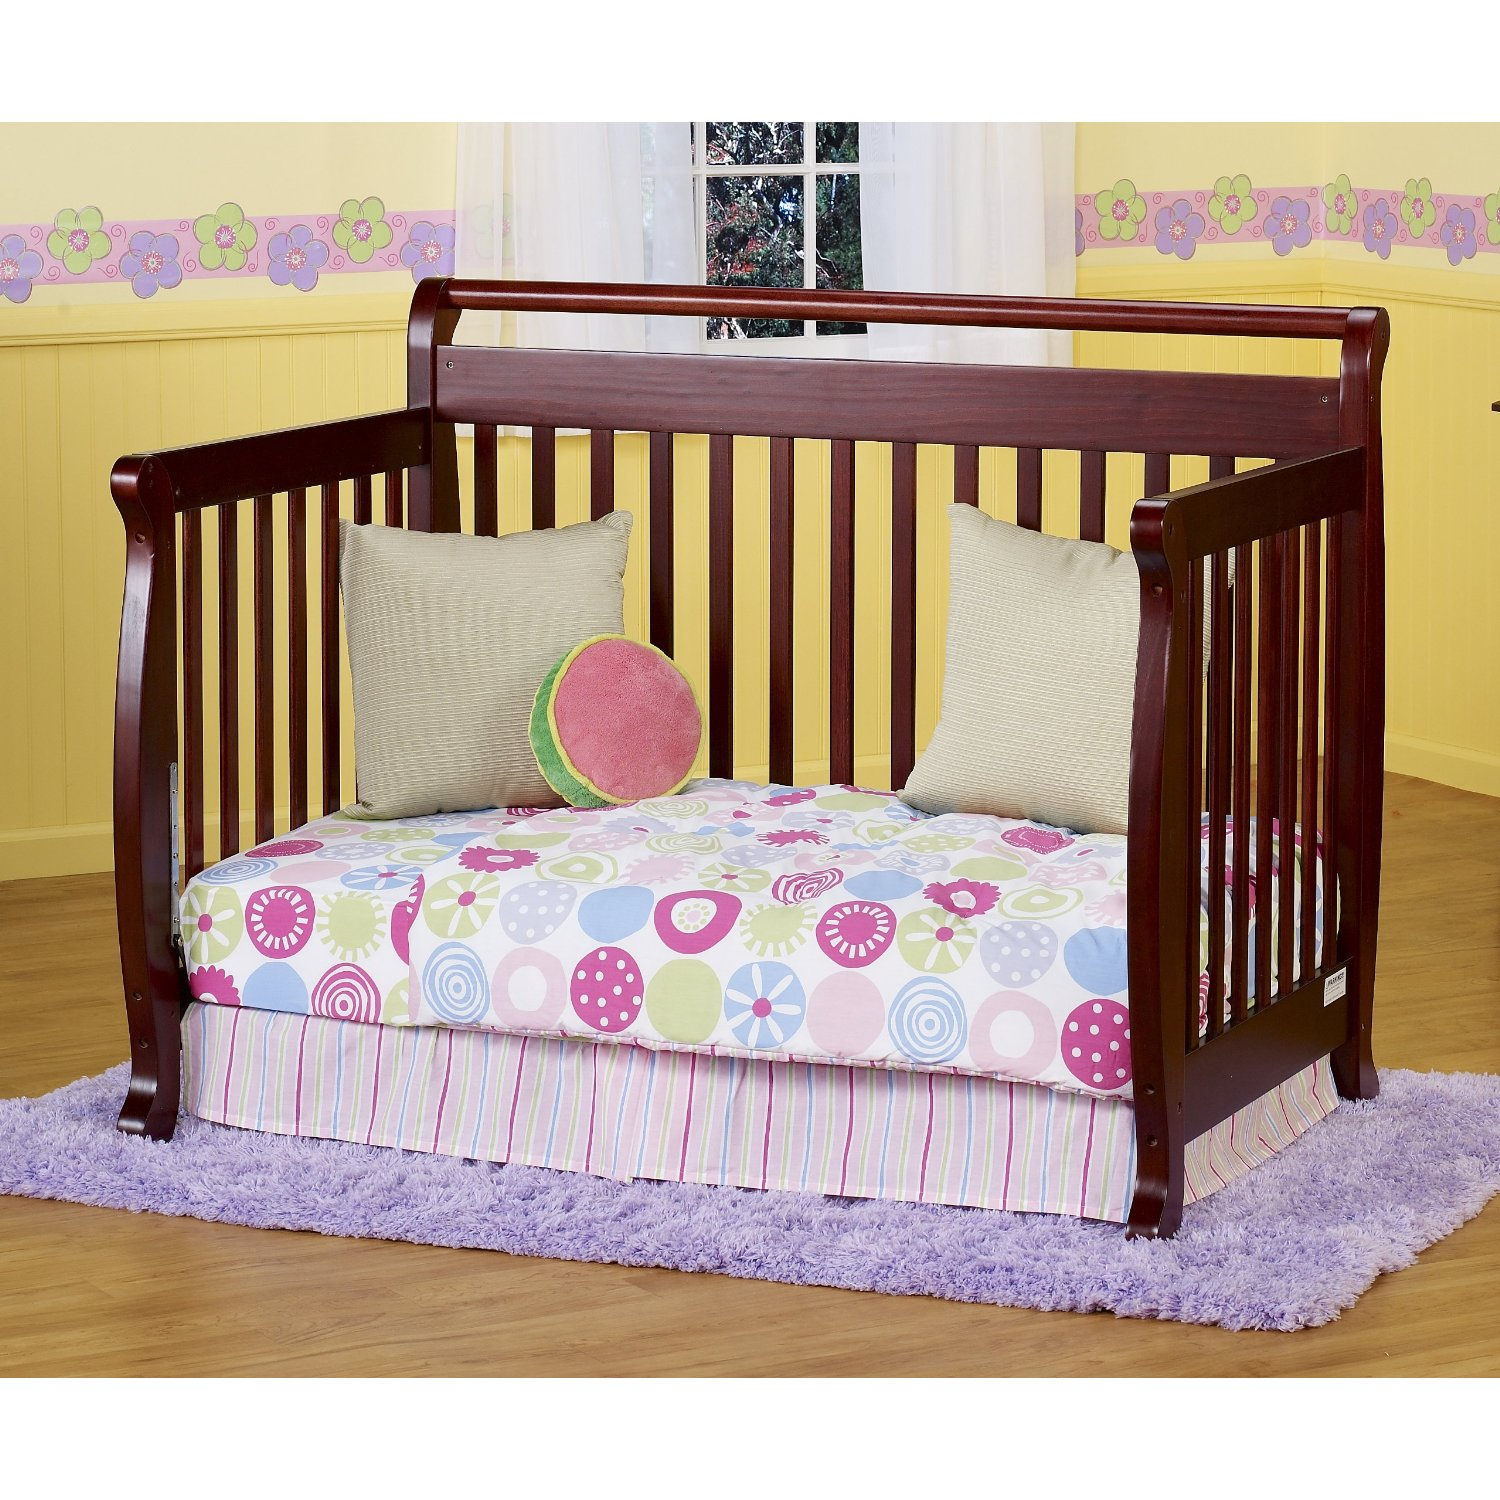 davinci emily 3-in-1 convertible crib instructions